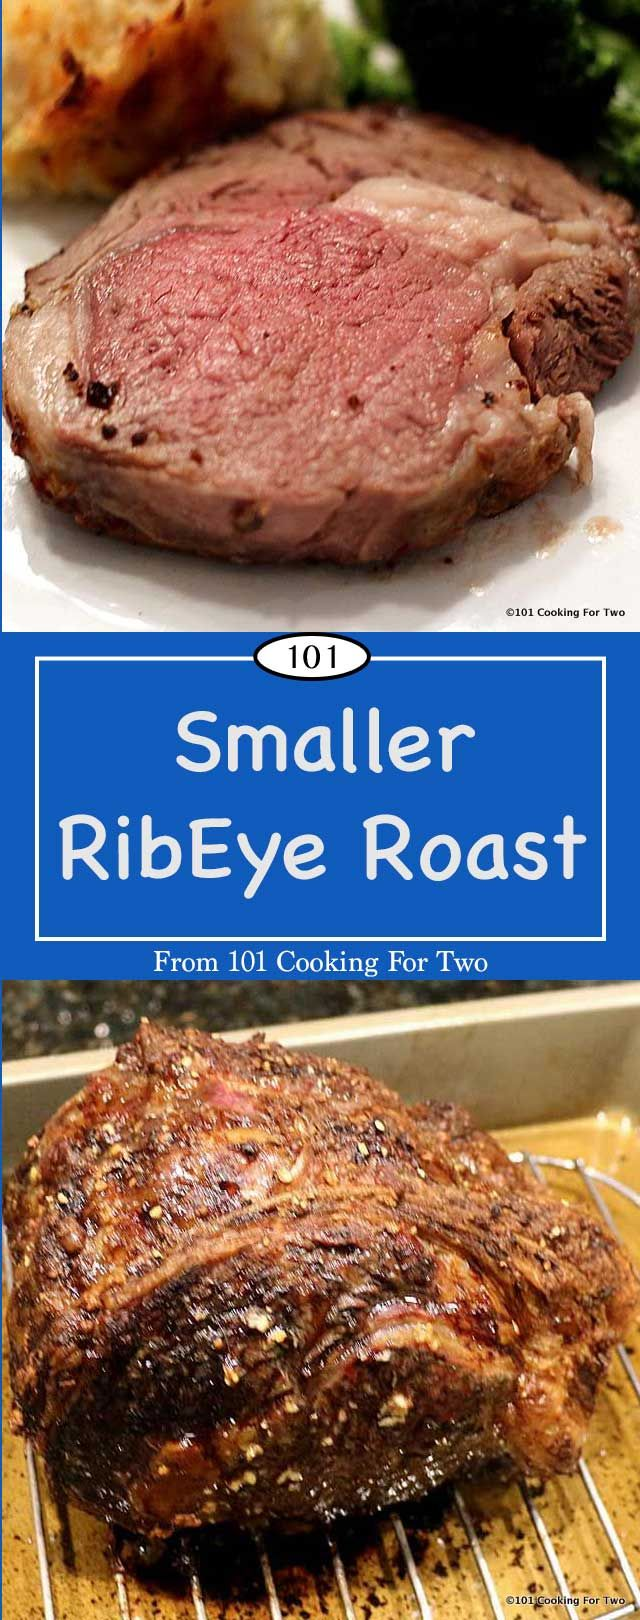 Easy step by step instructions for a wonderful small ribeye roast. Cut down for the smaller household. This roast will not leave you eating leftovers all week. via @drdan101cft